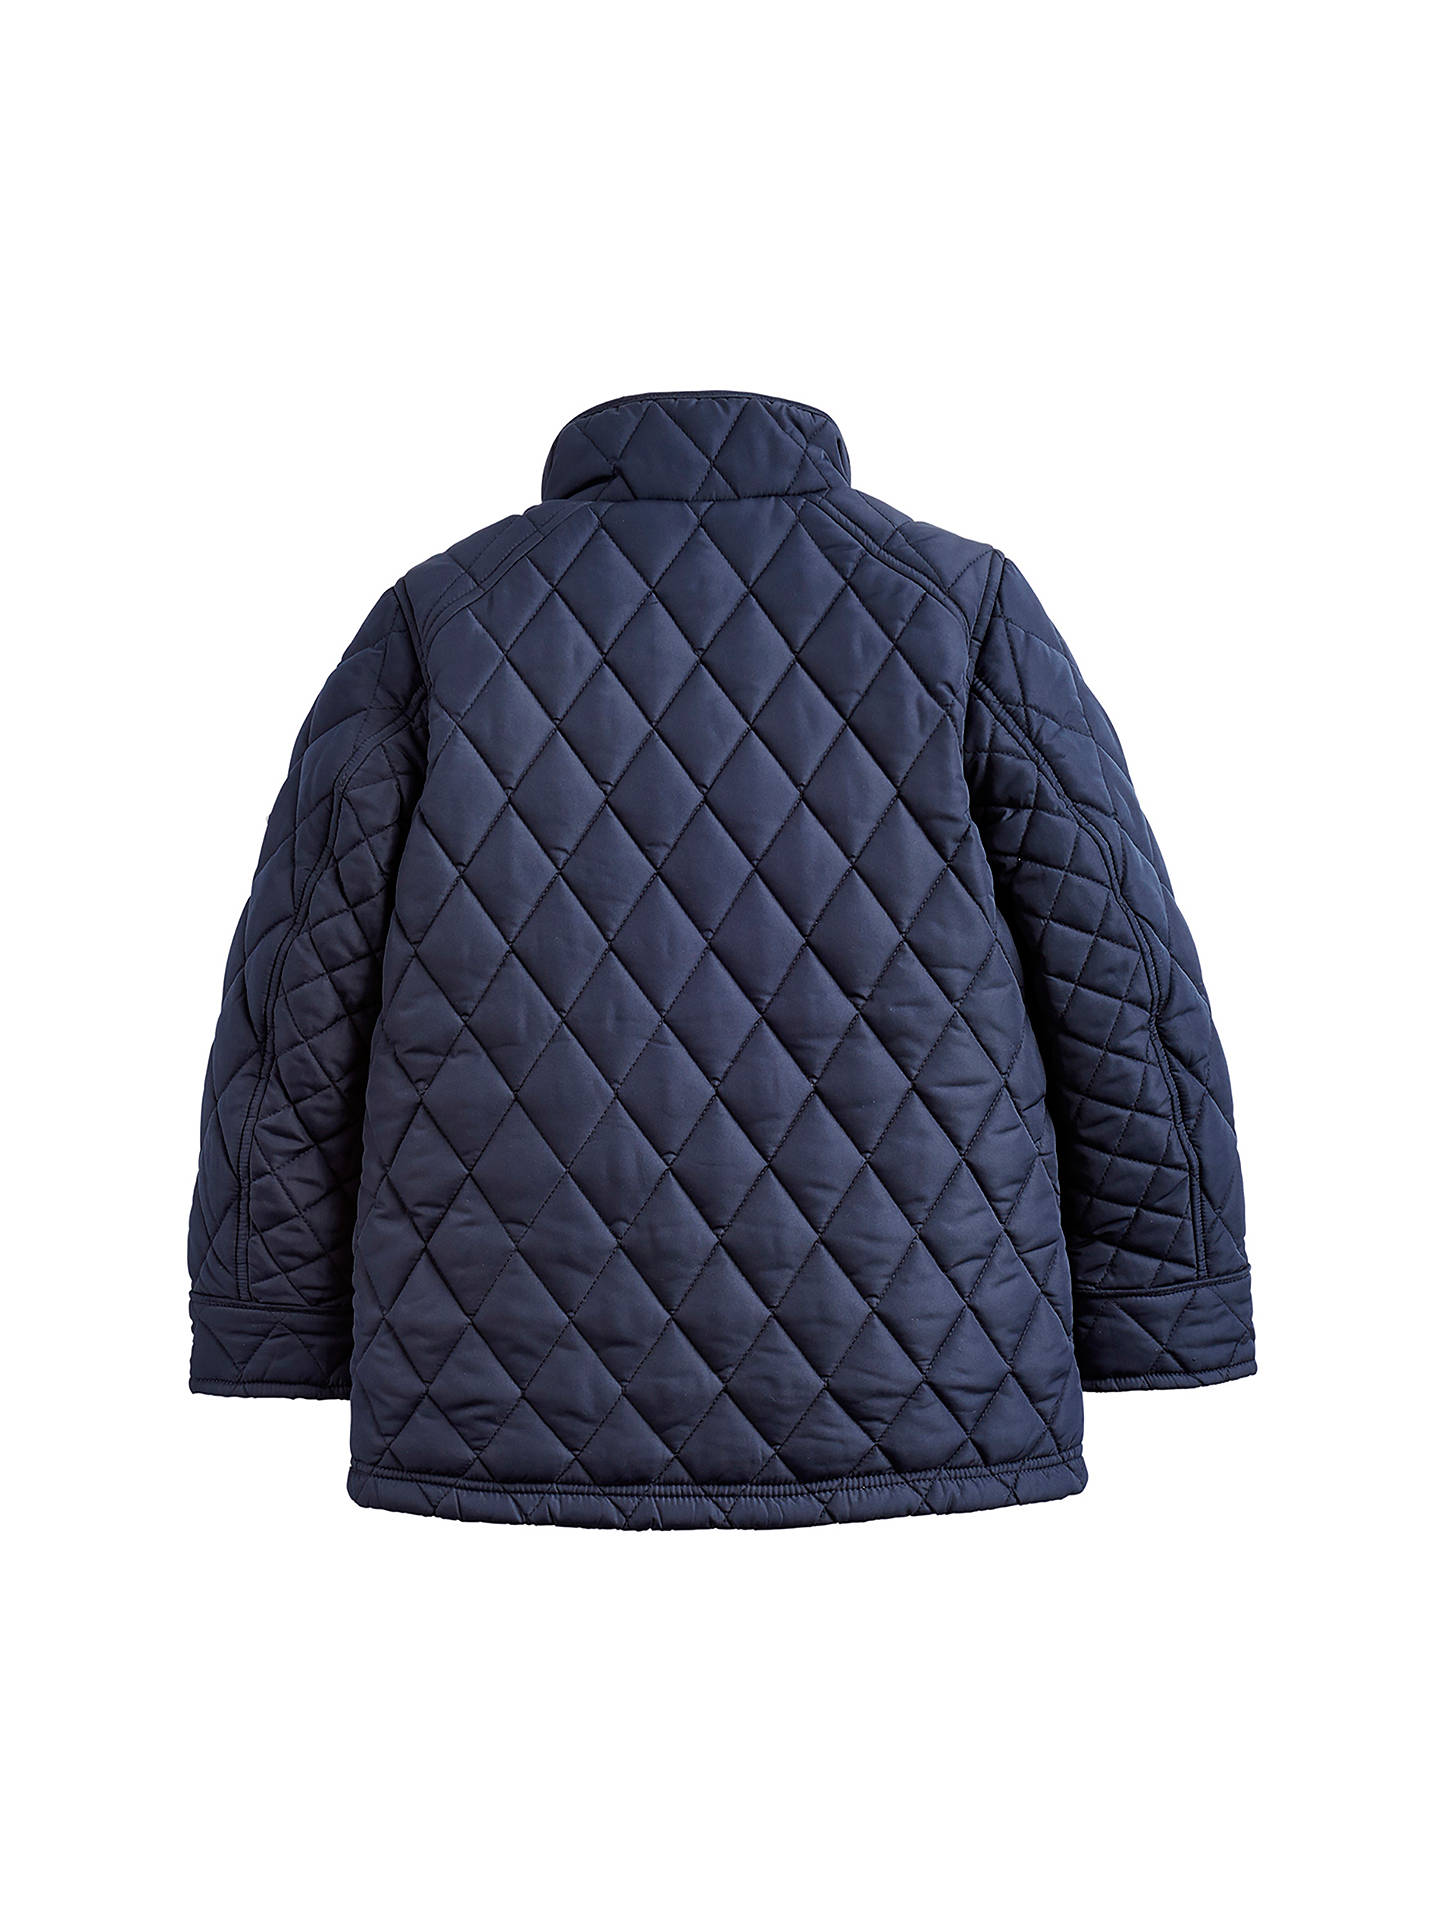 e21ef5e60ffc4 ... Buy Little Joule Boys' Stafford Quilted Jacket, Navy, 3 years Online at  johnlewis ...